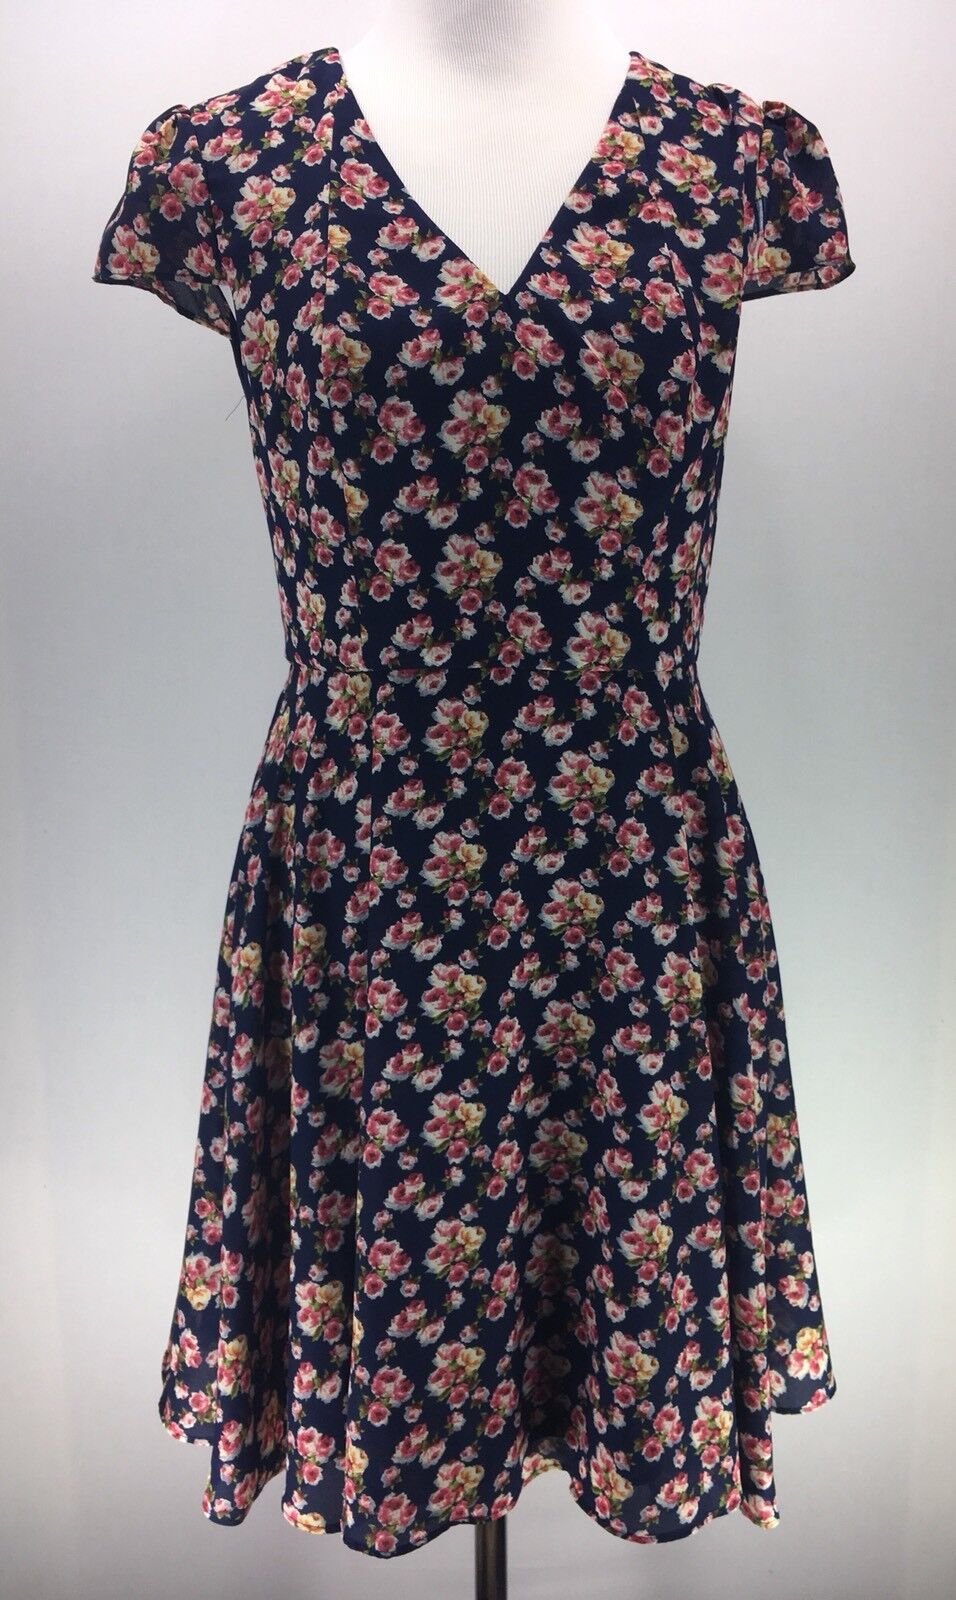 Betsey Johnson Dress Size 6 Floral Fit and Flare bluee Dress